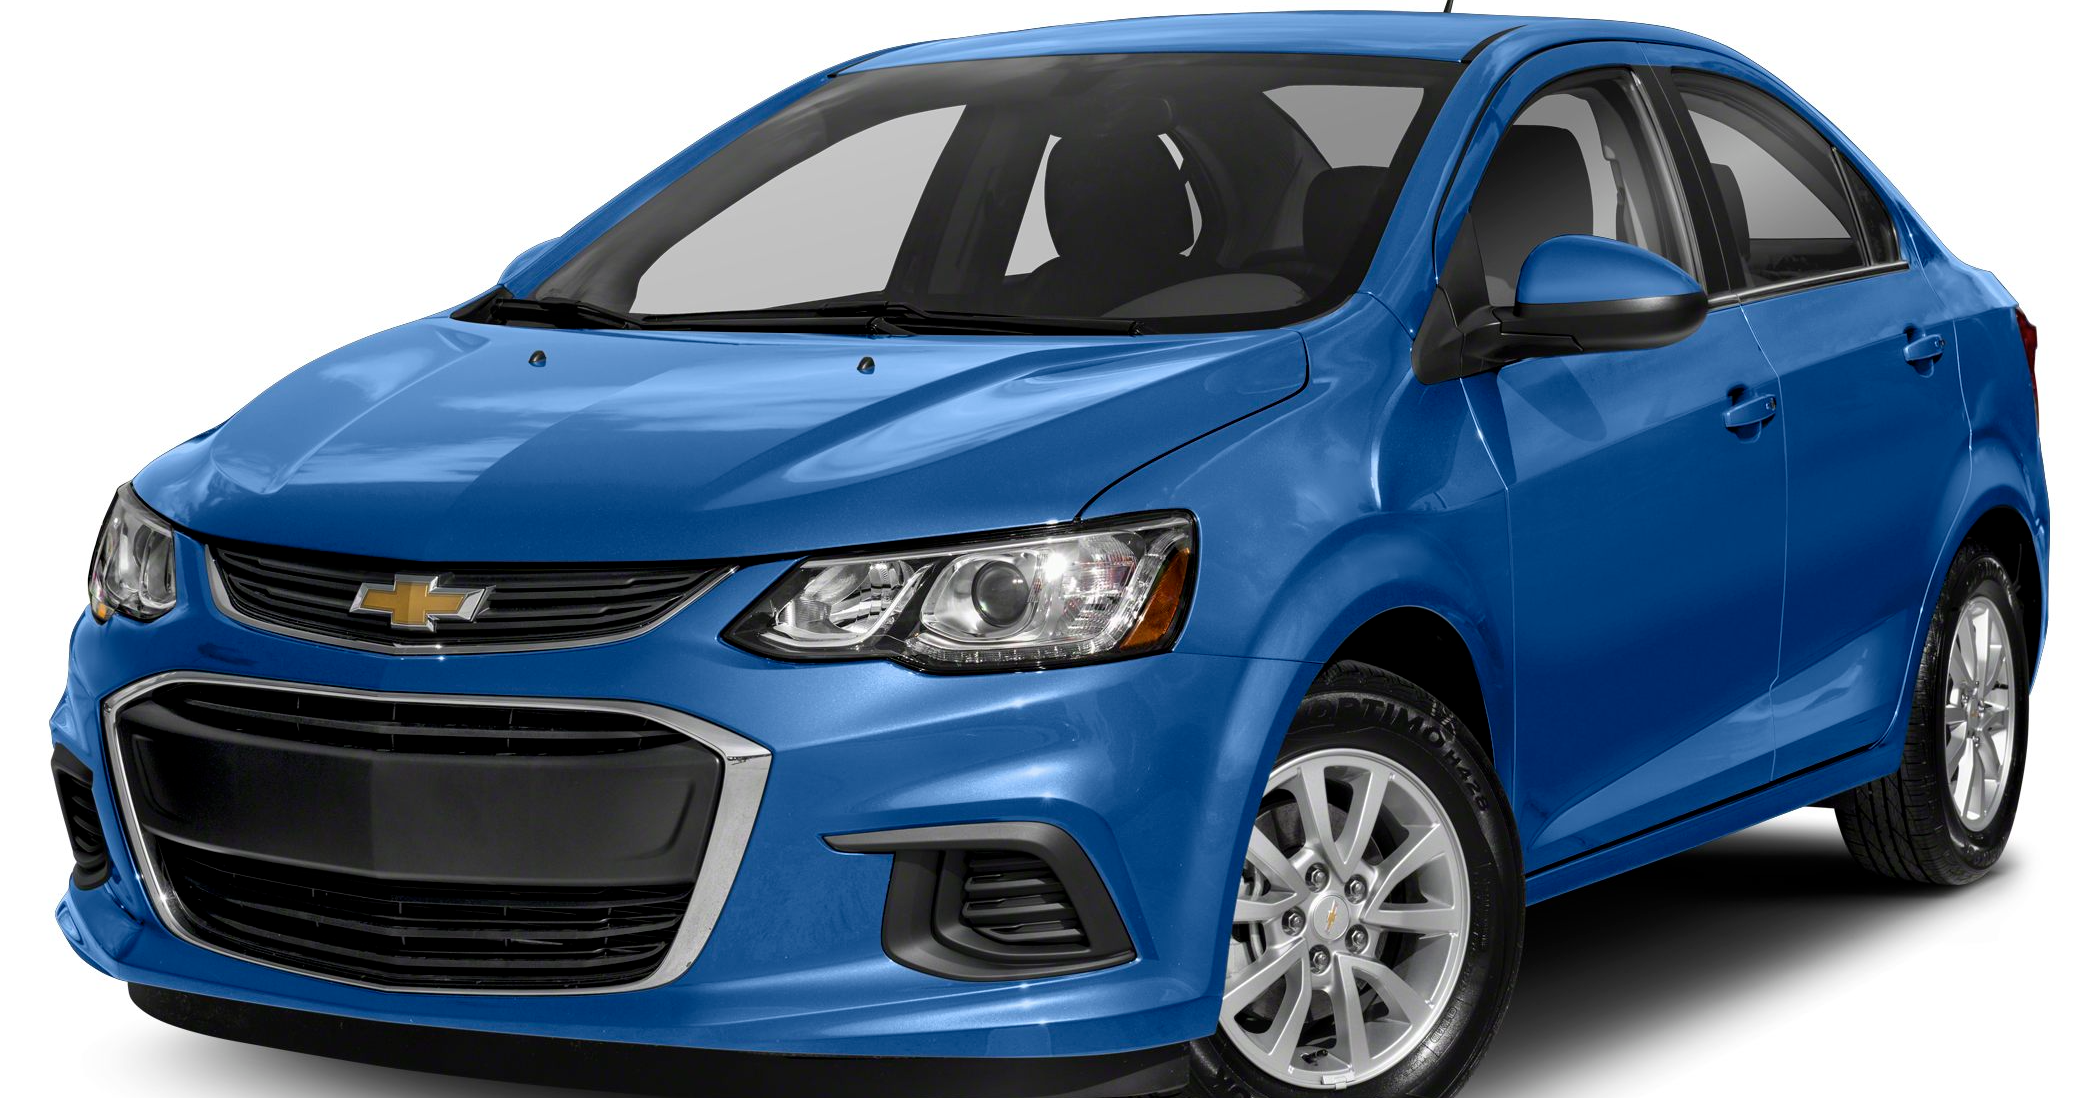 The Chevrolet Sonic Fits Your Drive